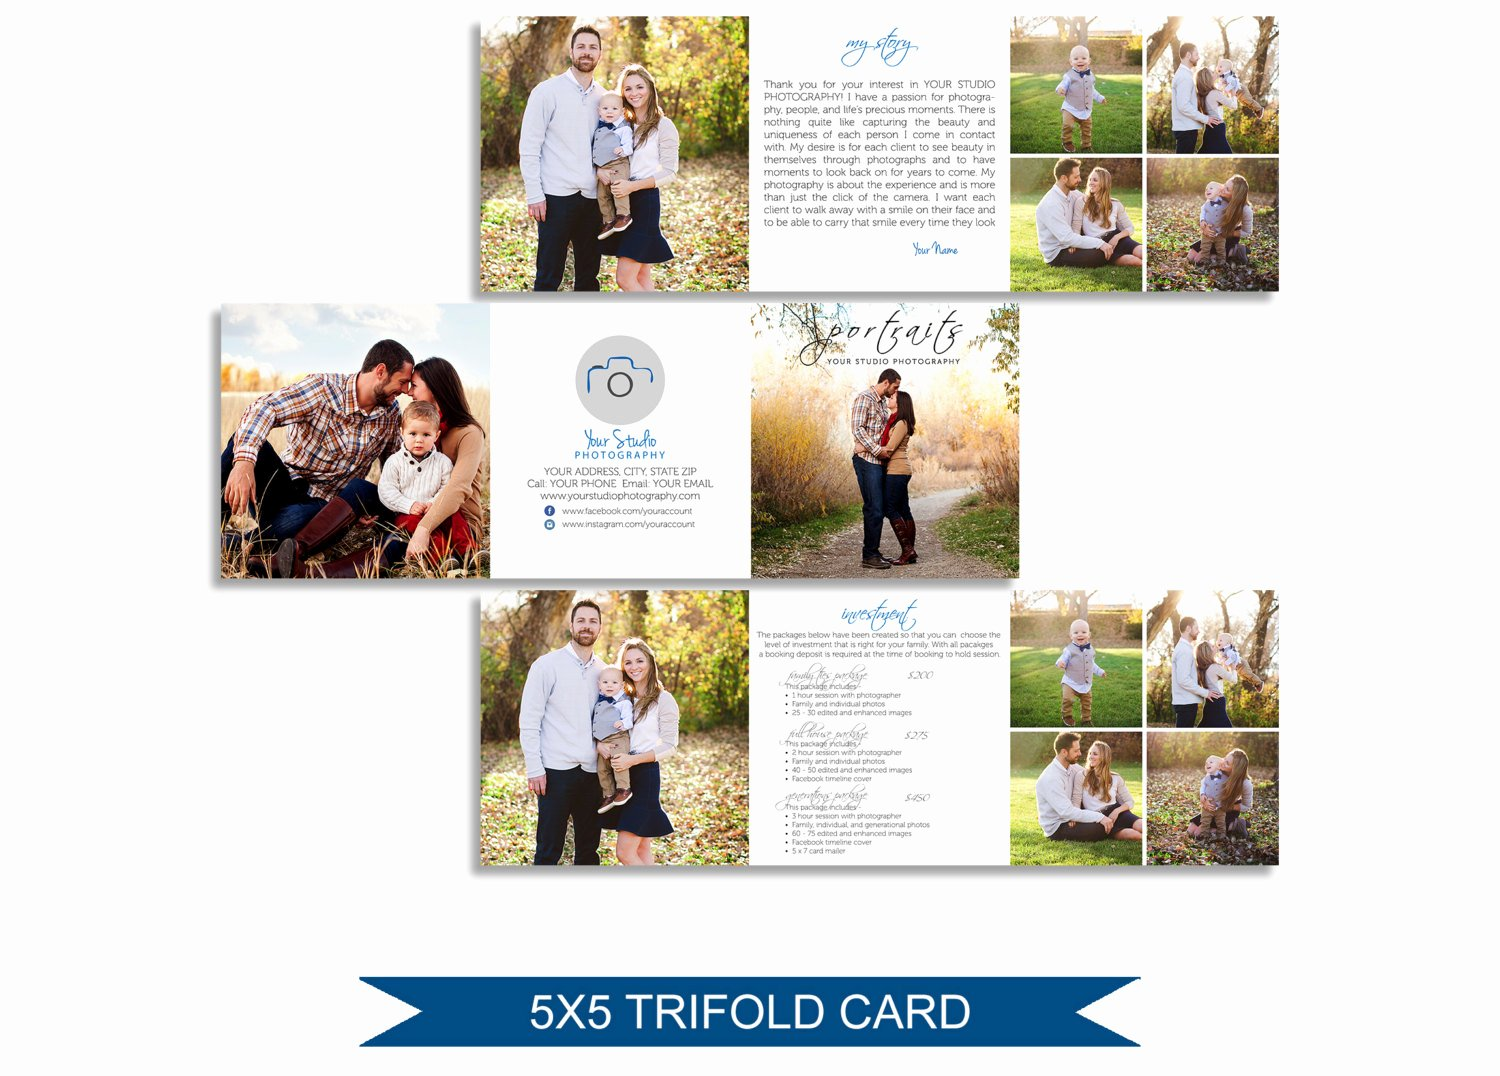 Trifold Brochure Template Photoshop Beautiful Trifold Brochure Pricing Guide Shop Template M002